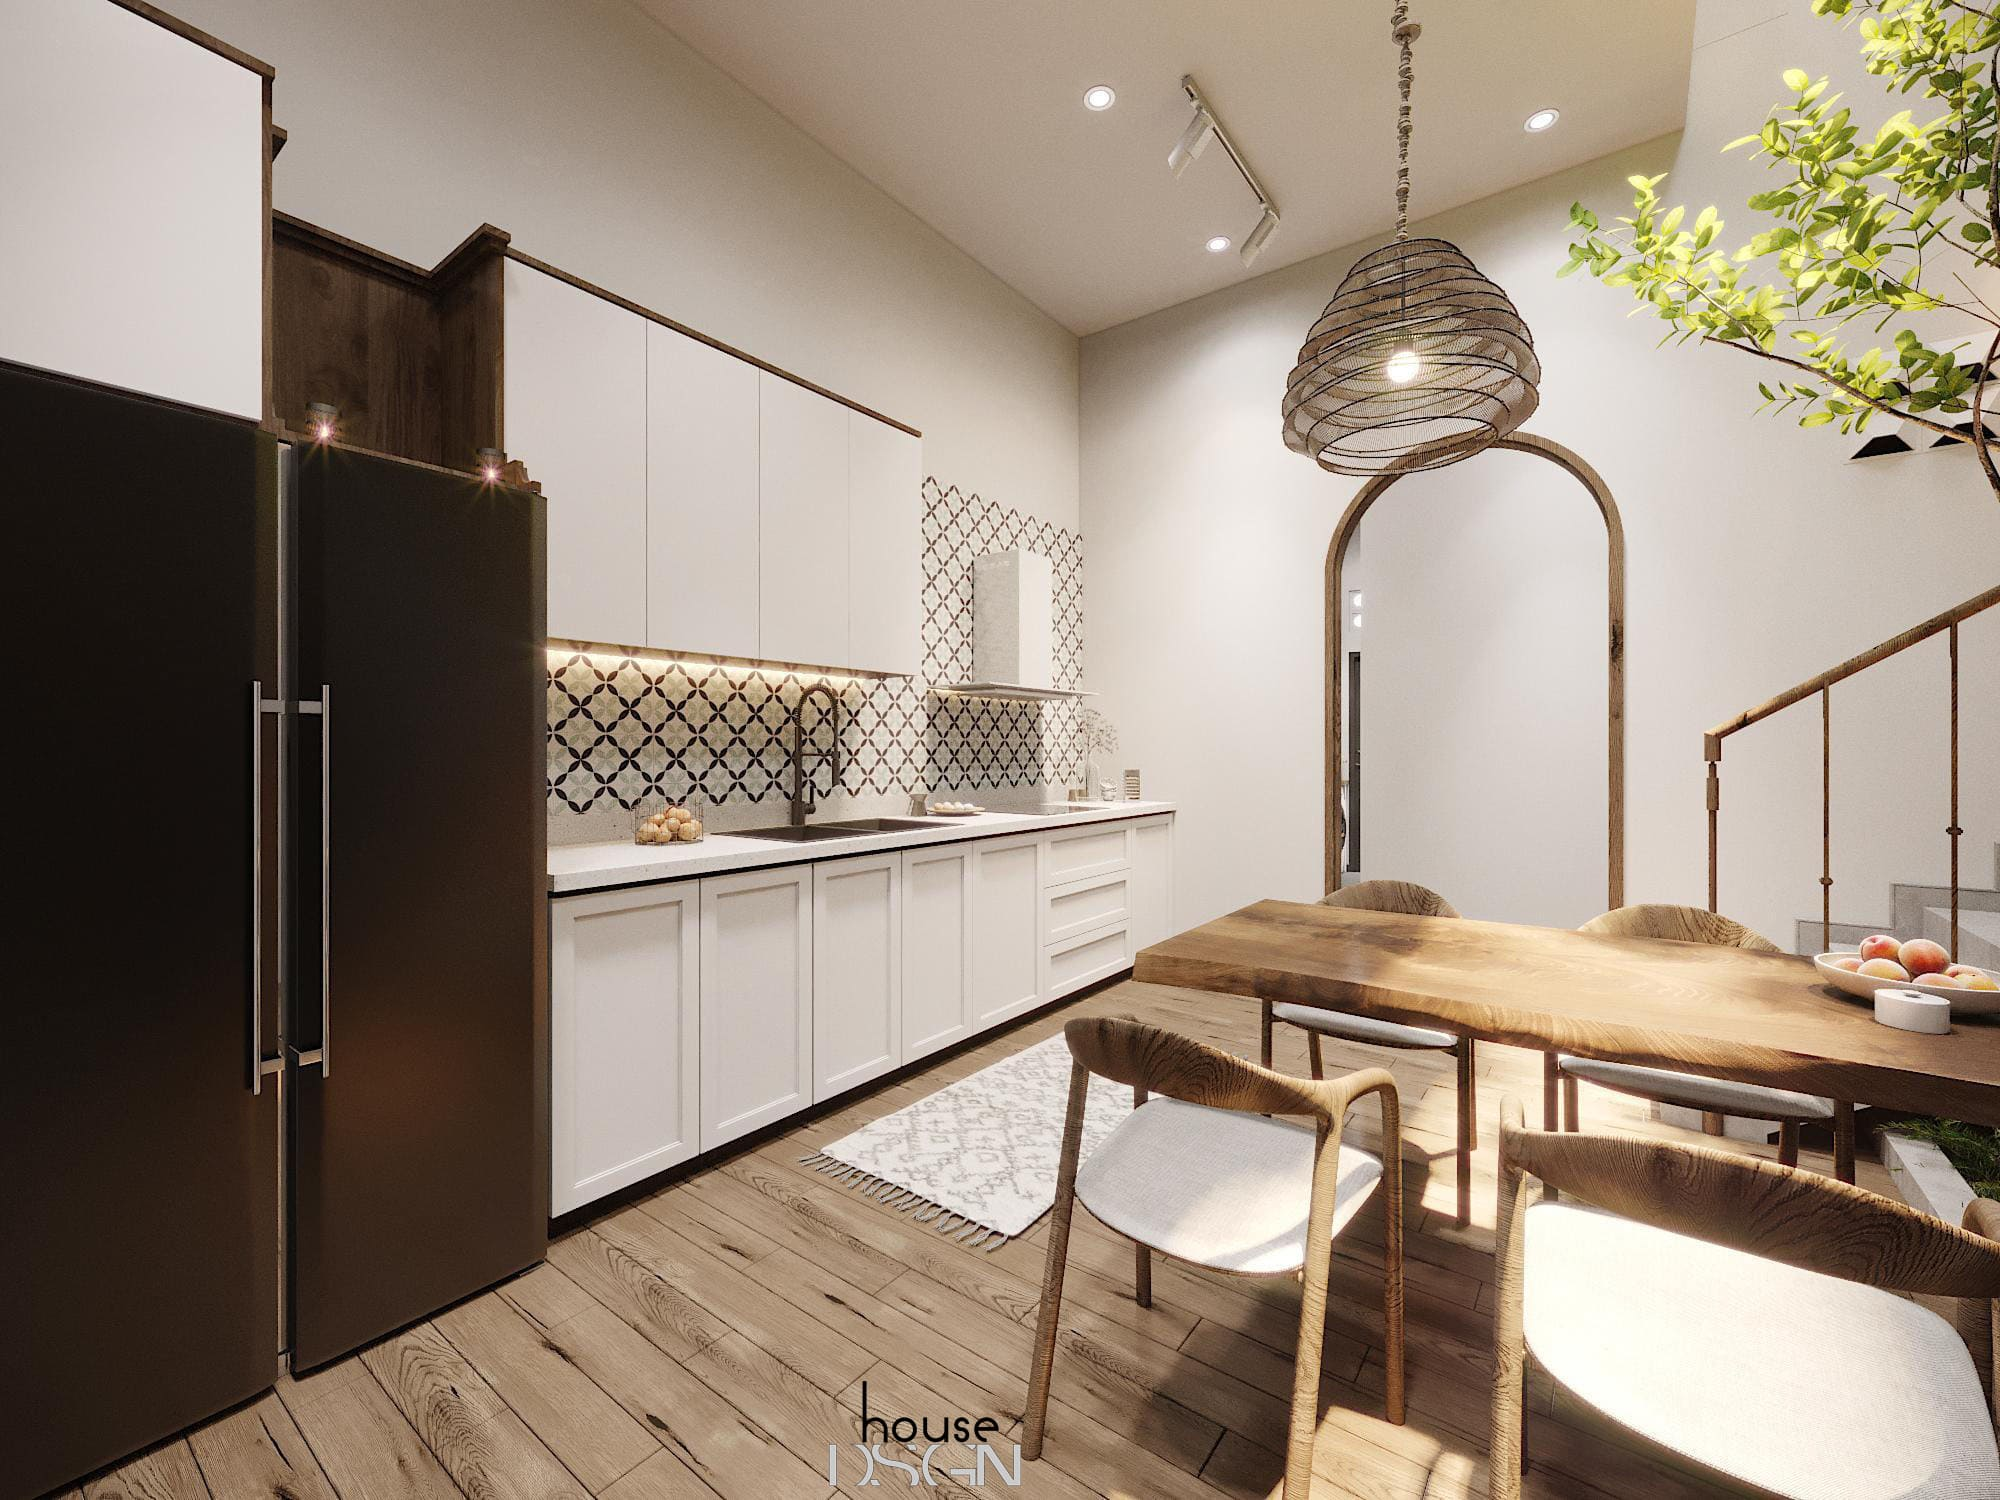 Interior design of town houses 2020